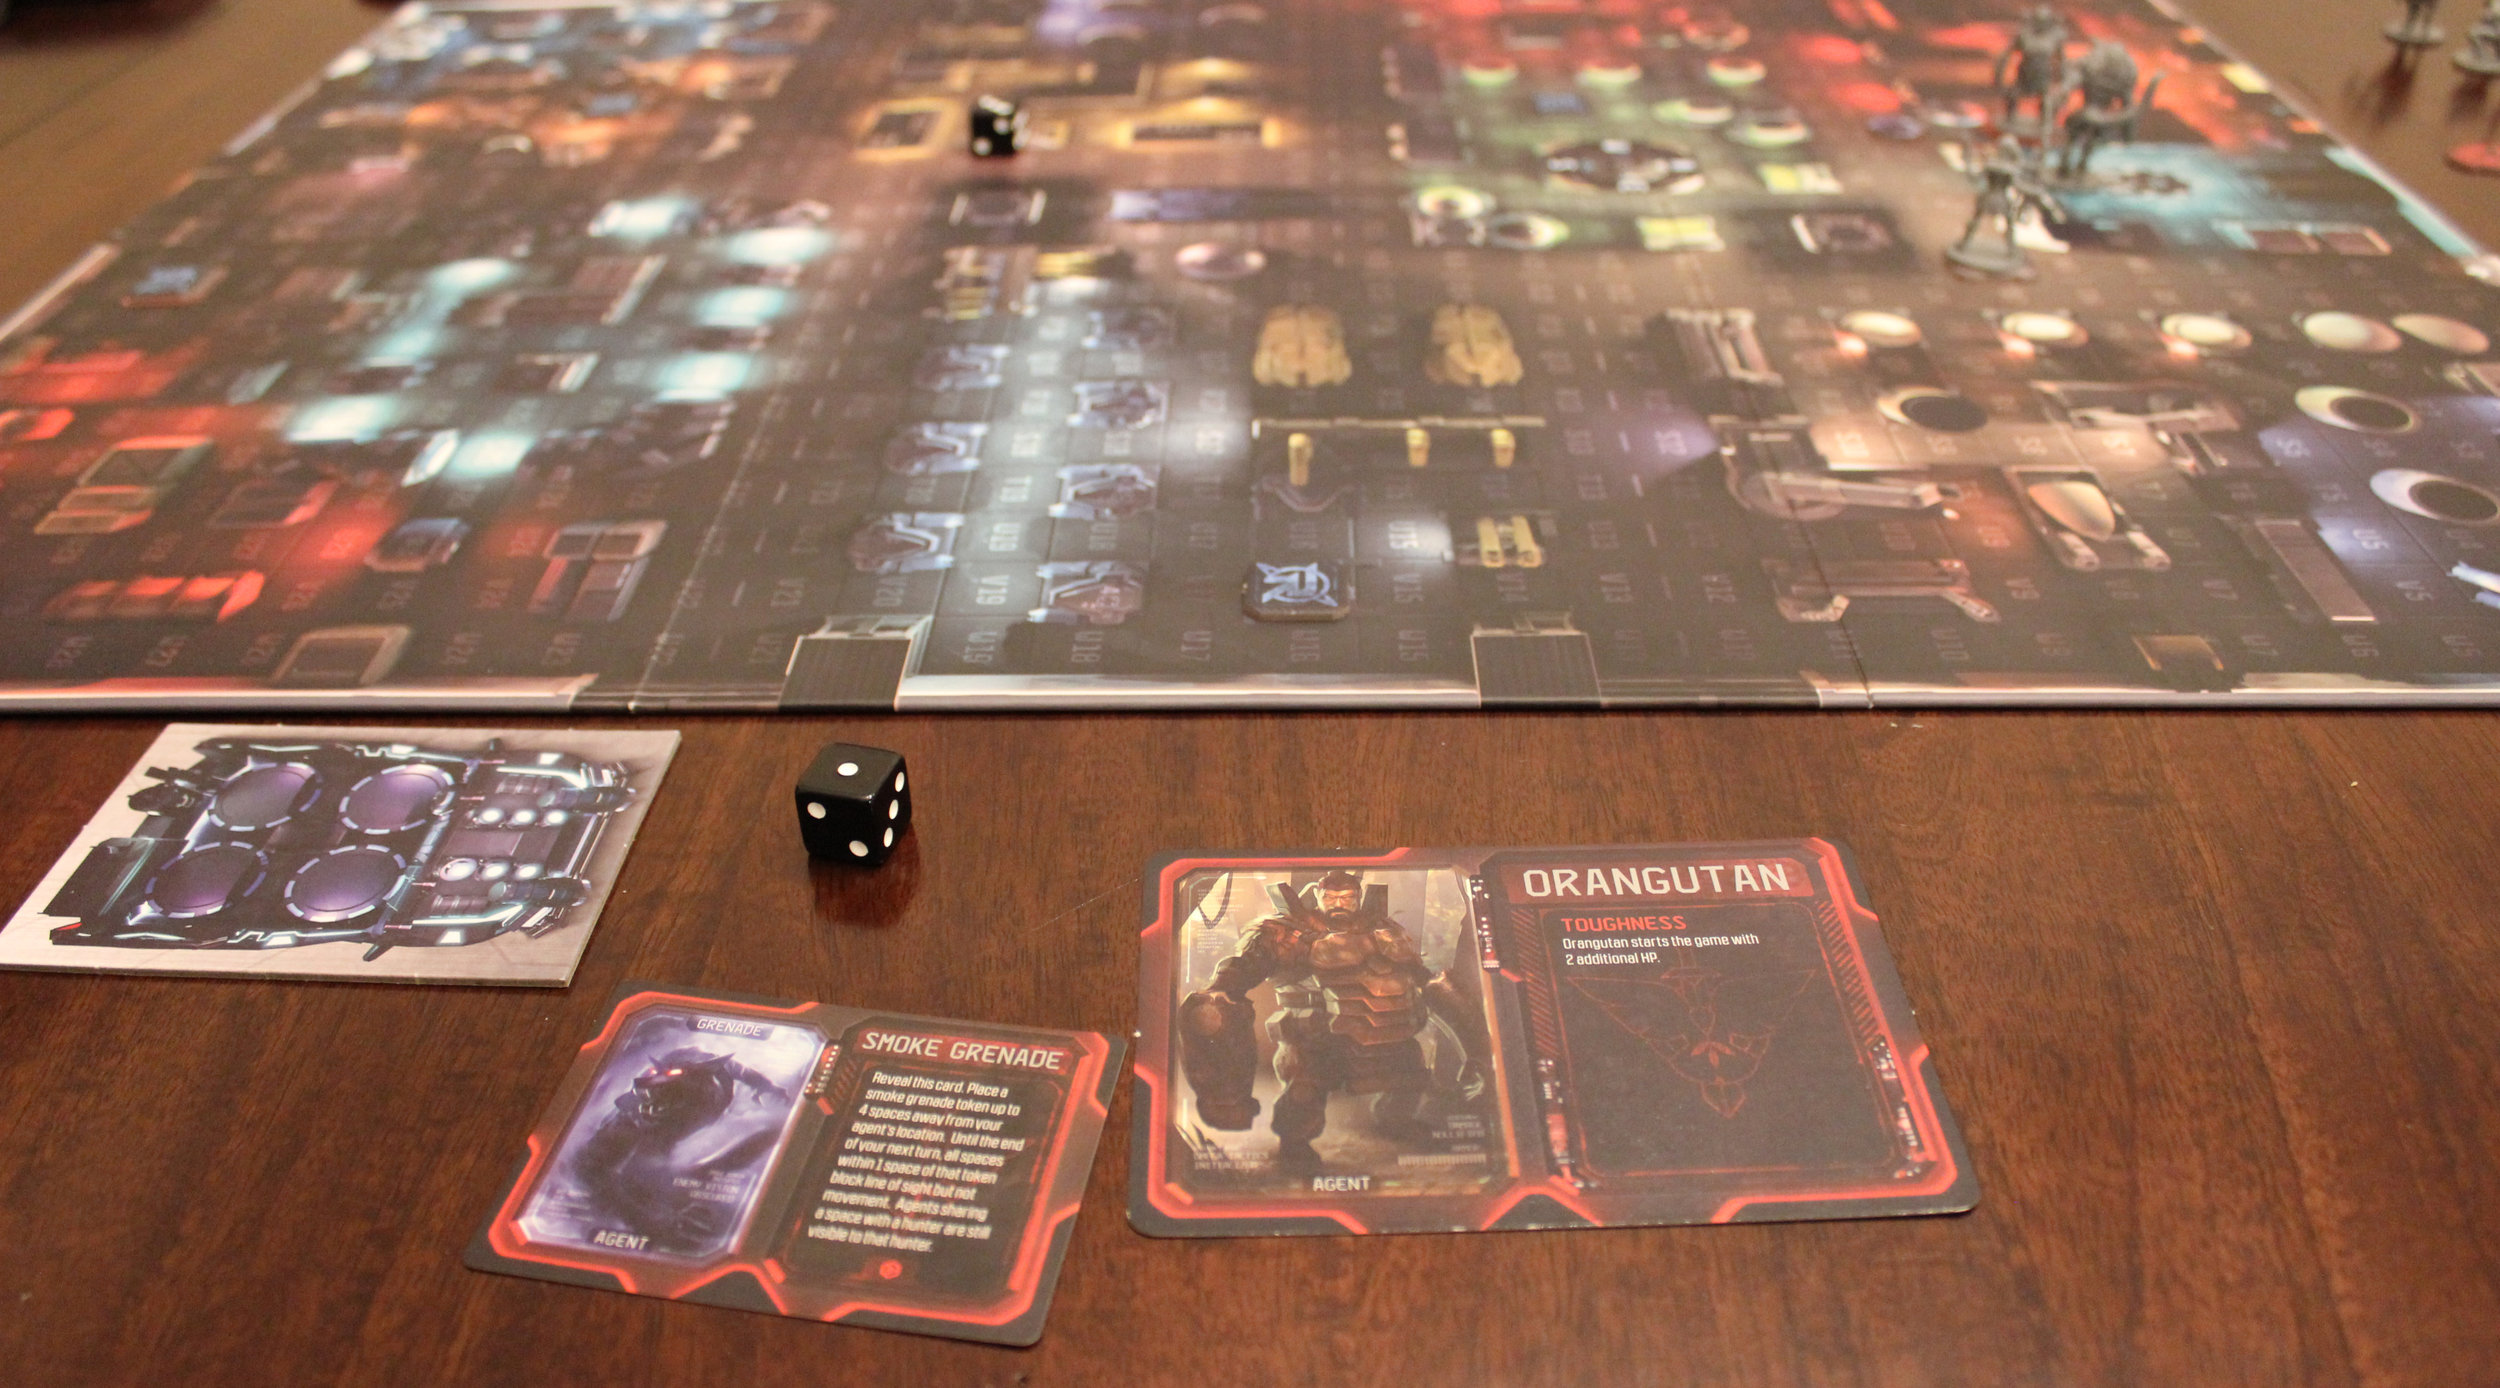 The agent's side of the board